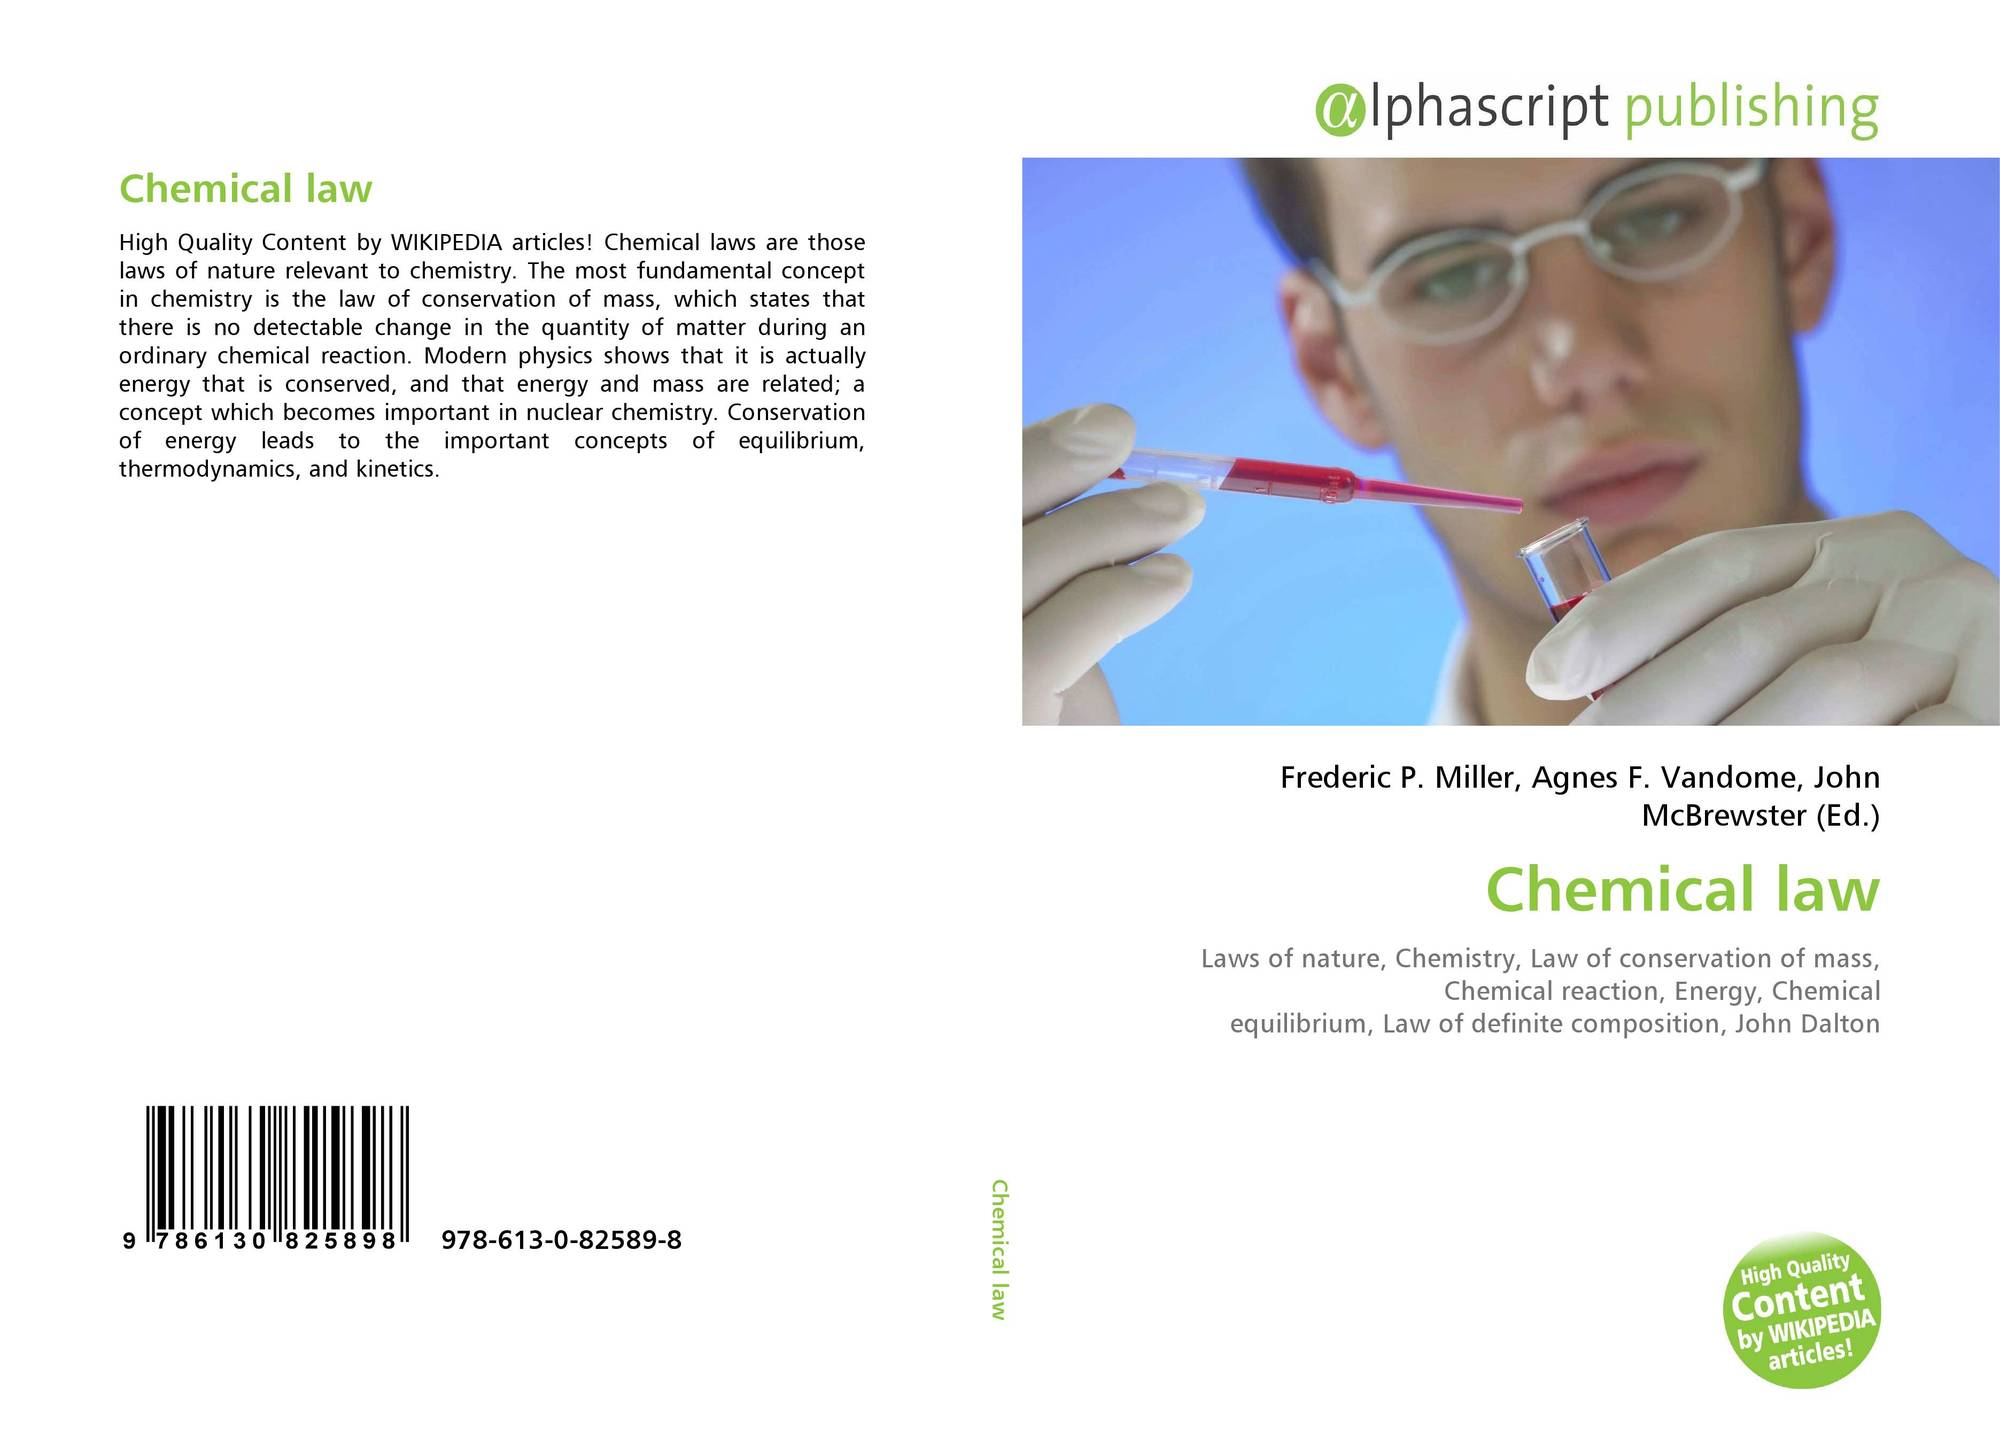 Chemical law, 978-613-0-82589-8, 6130825897 ,9786130825898